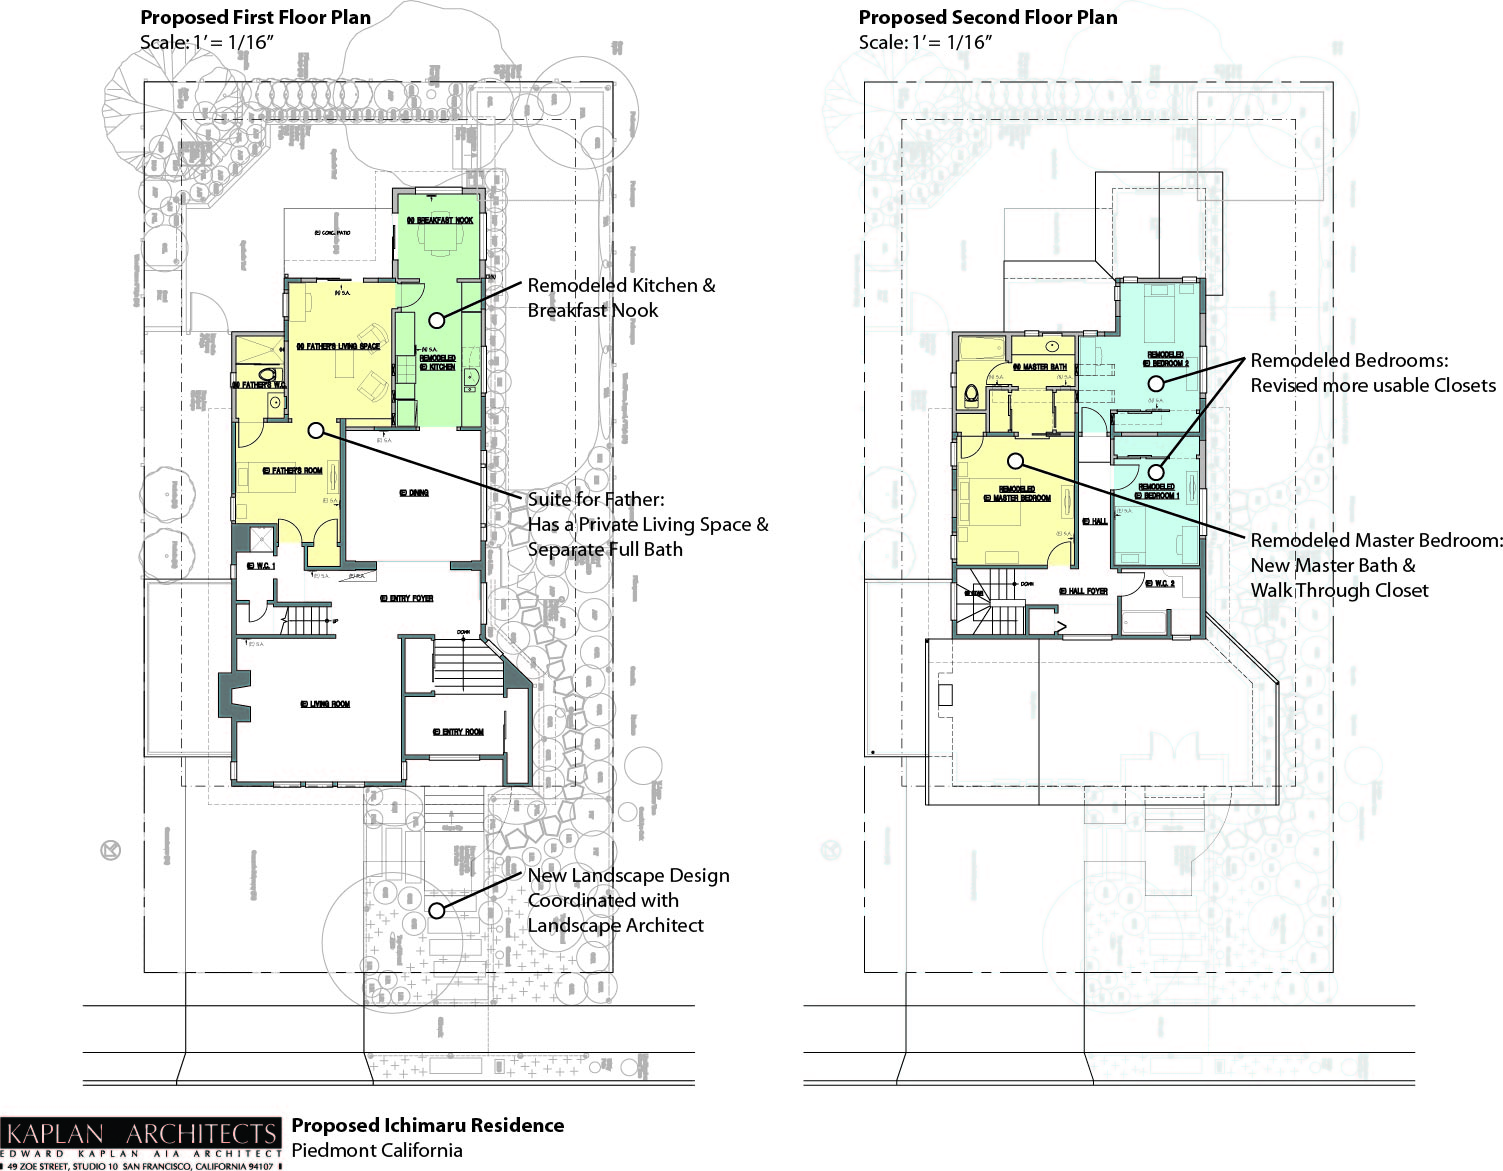 Piedmont remodel proposed plans.jpg